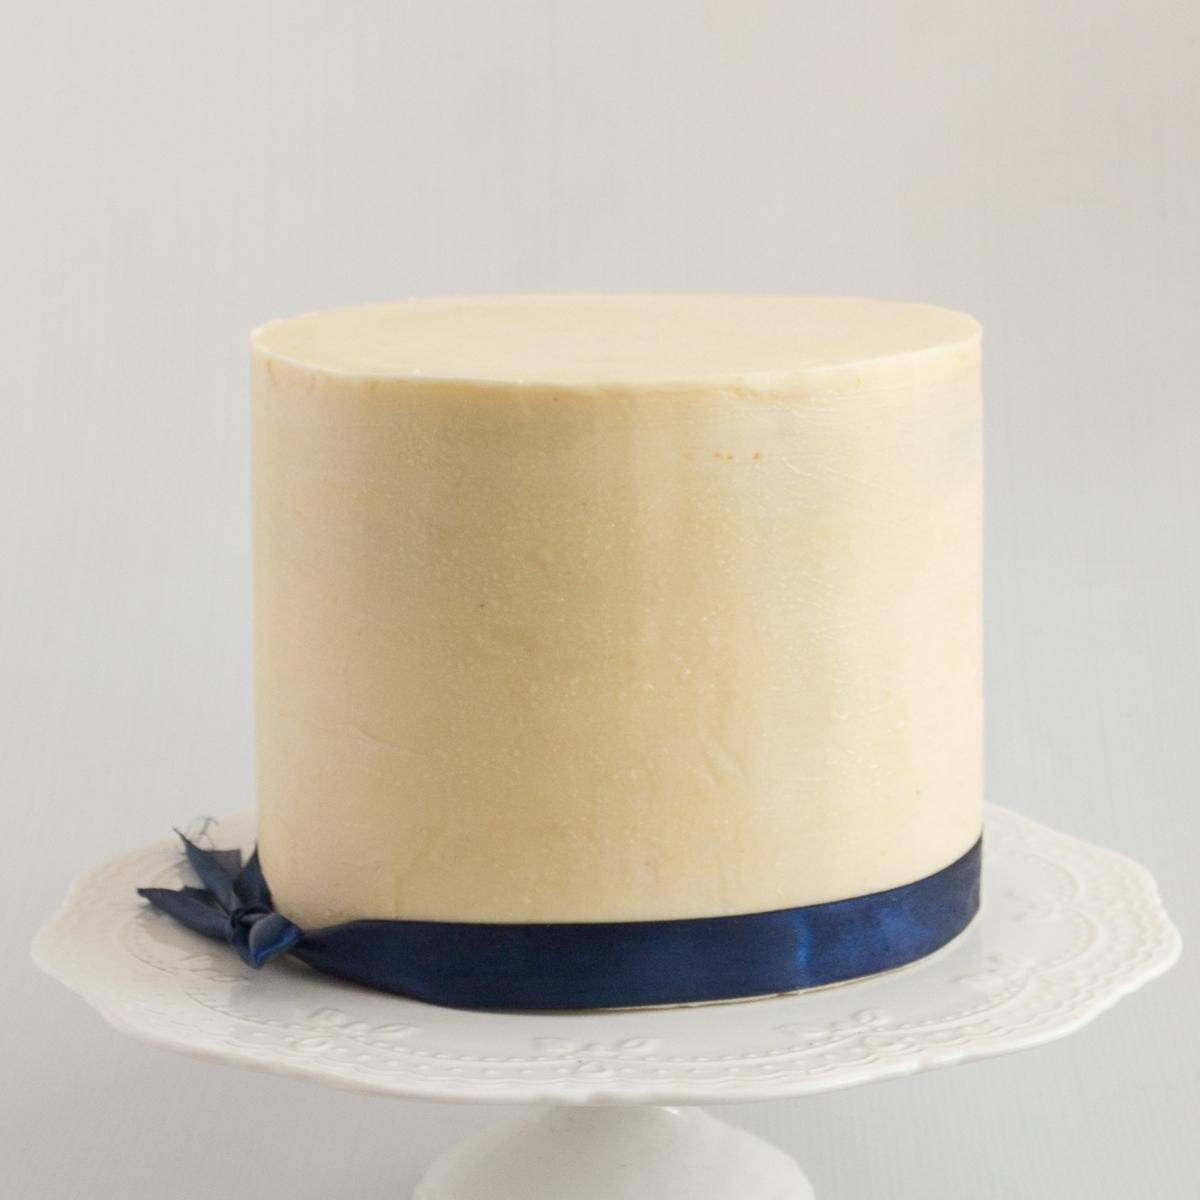 A frosted ganache cake with white chocolate ganache.